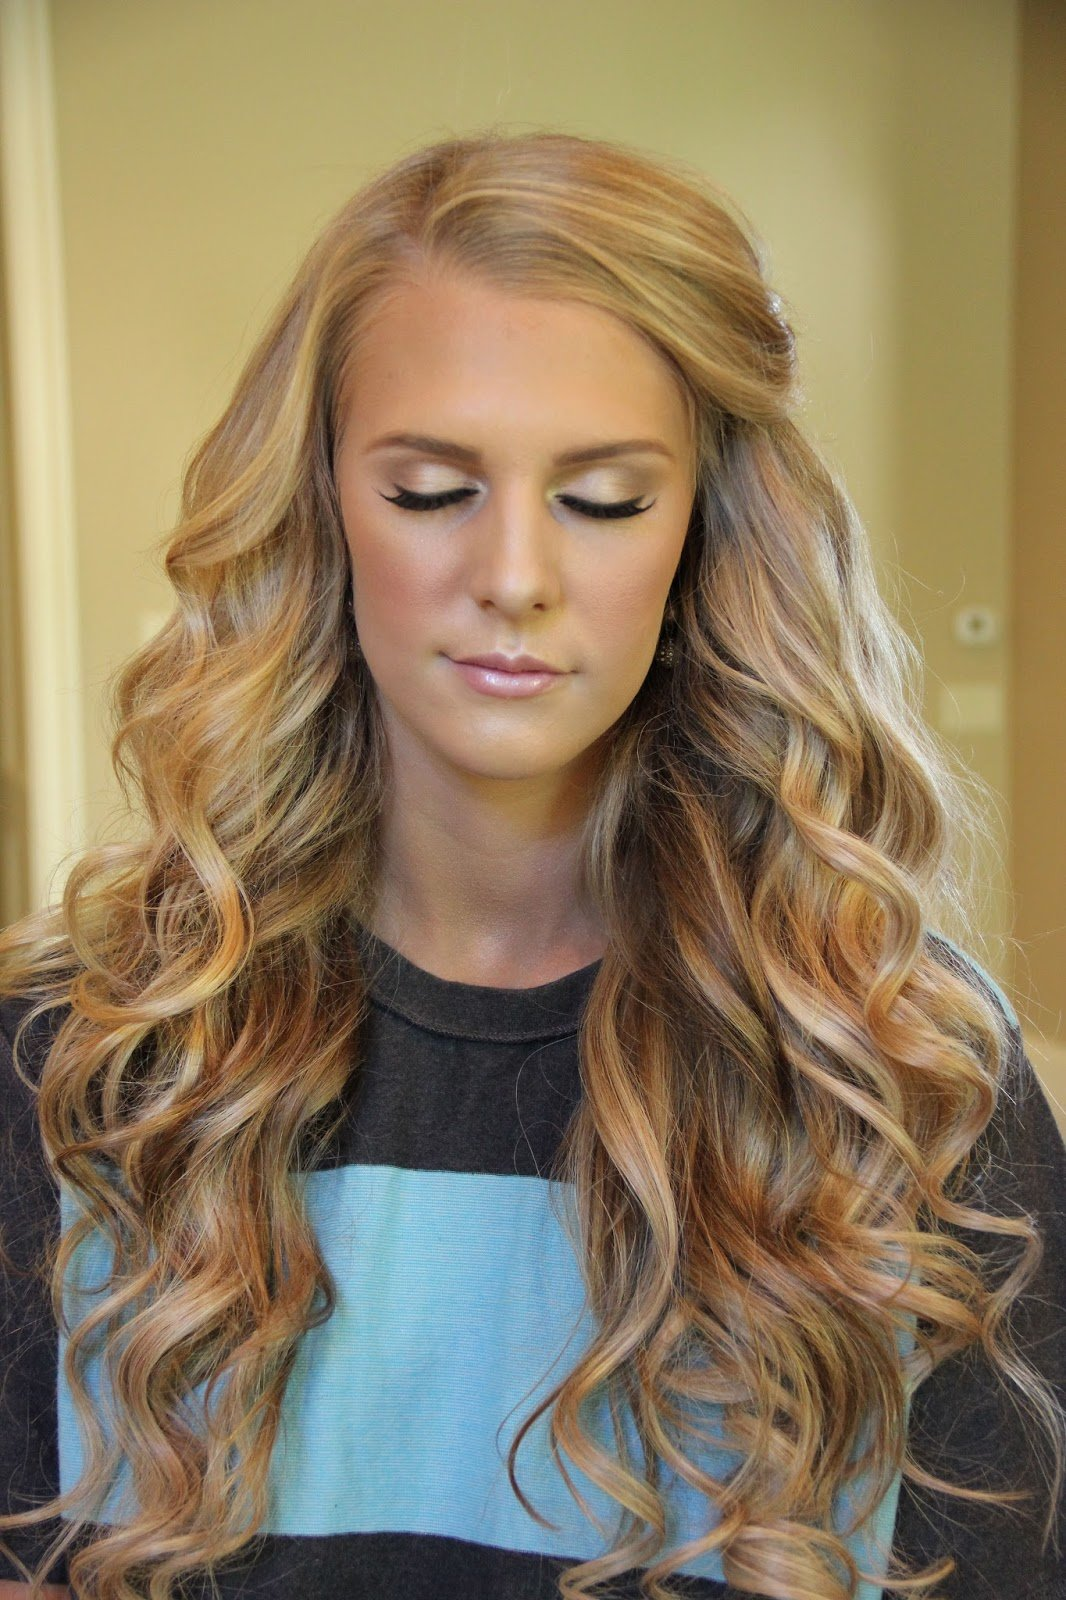 The Best I Wish My Hair Could Look Like Hers Hair Pinterest Pictures